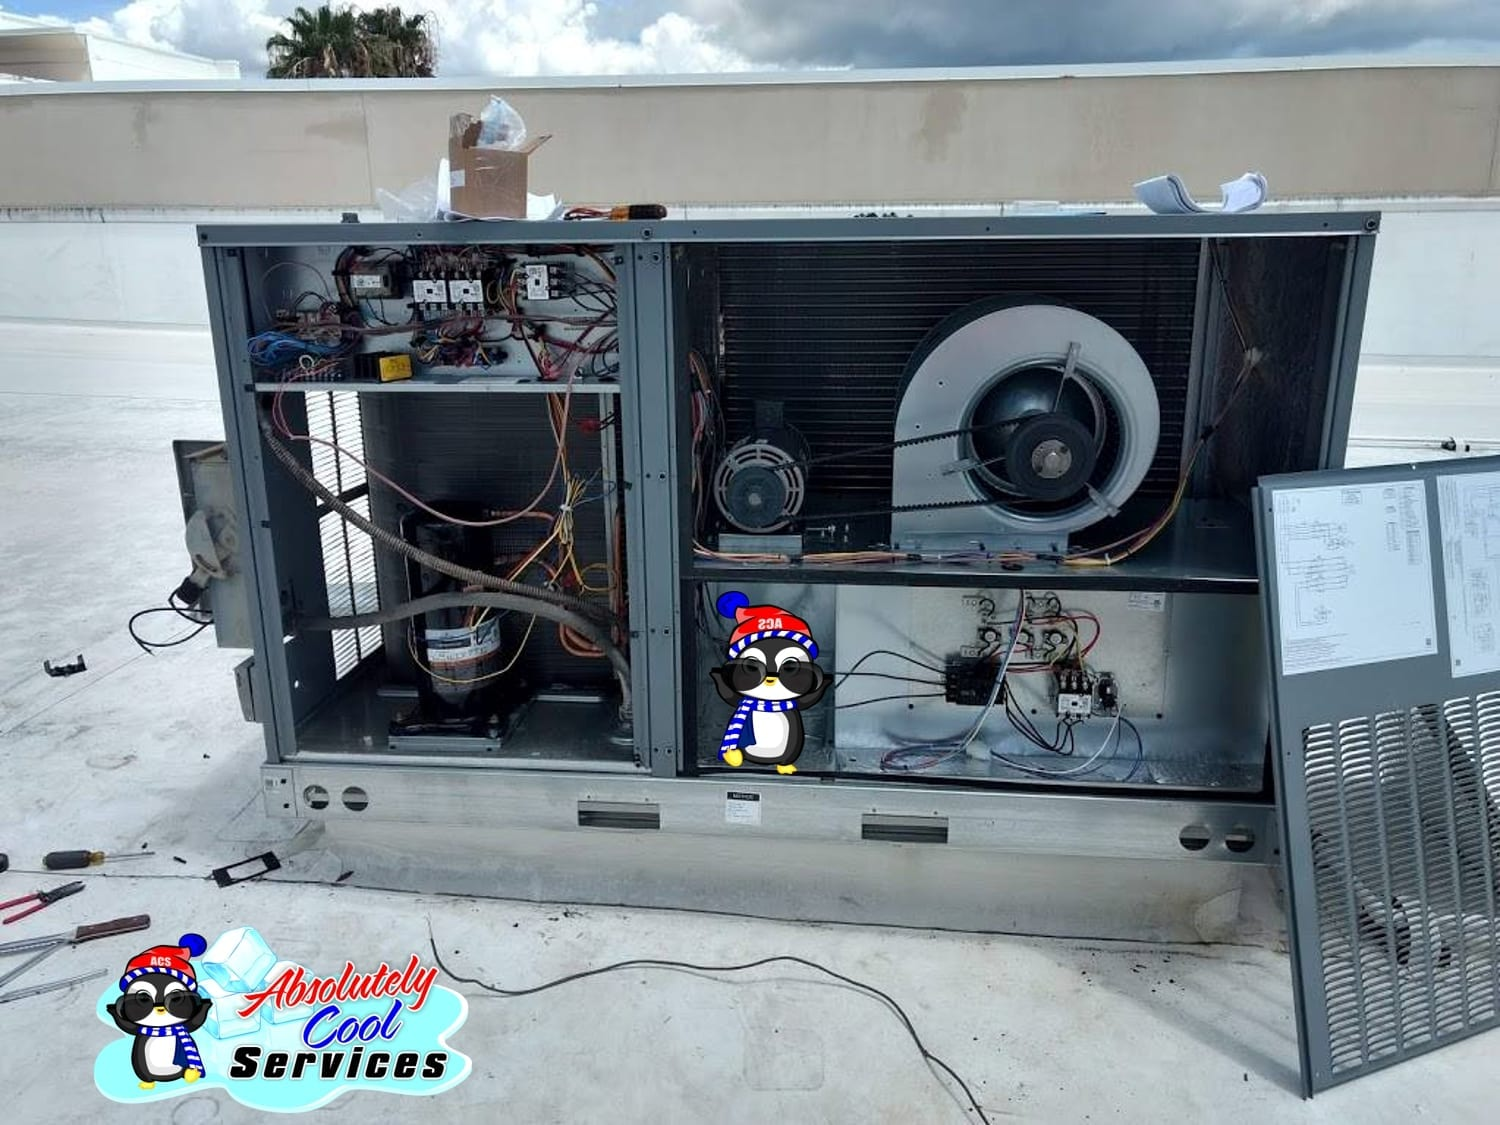 Roof Air Conditioning | HVAC Installation Service near Delray Beach